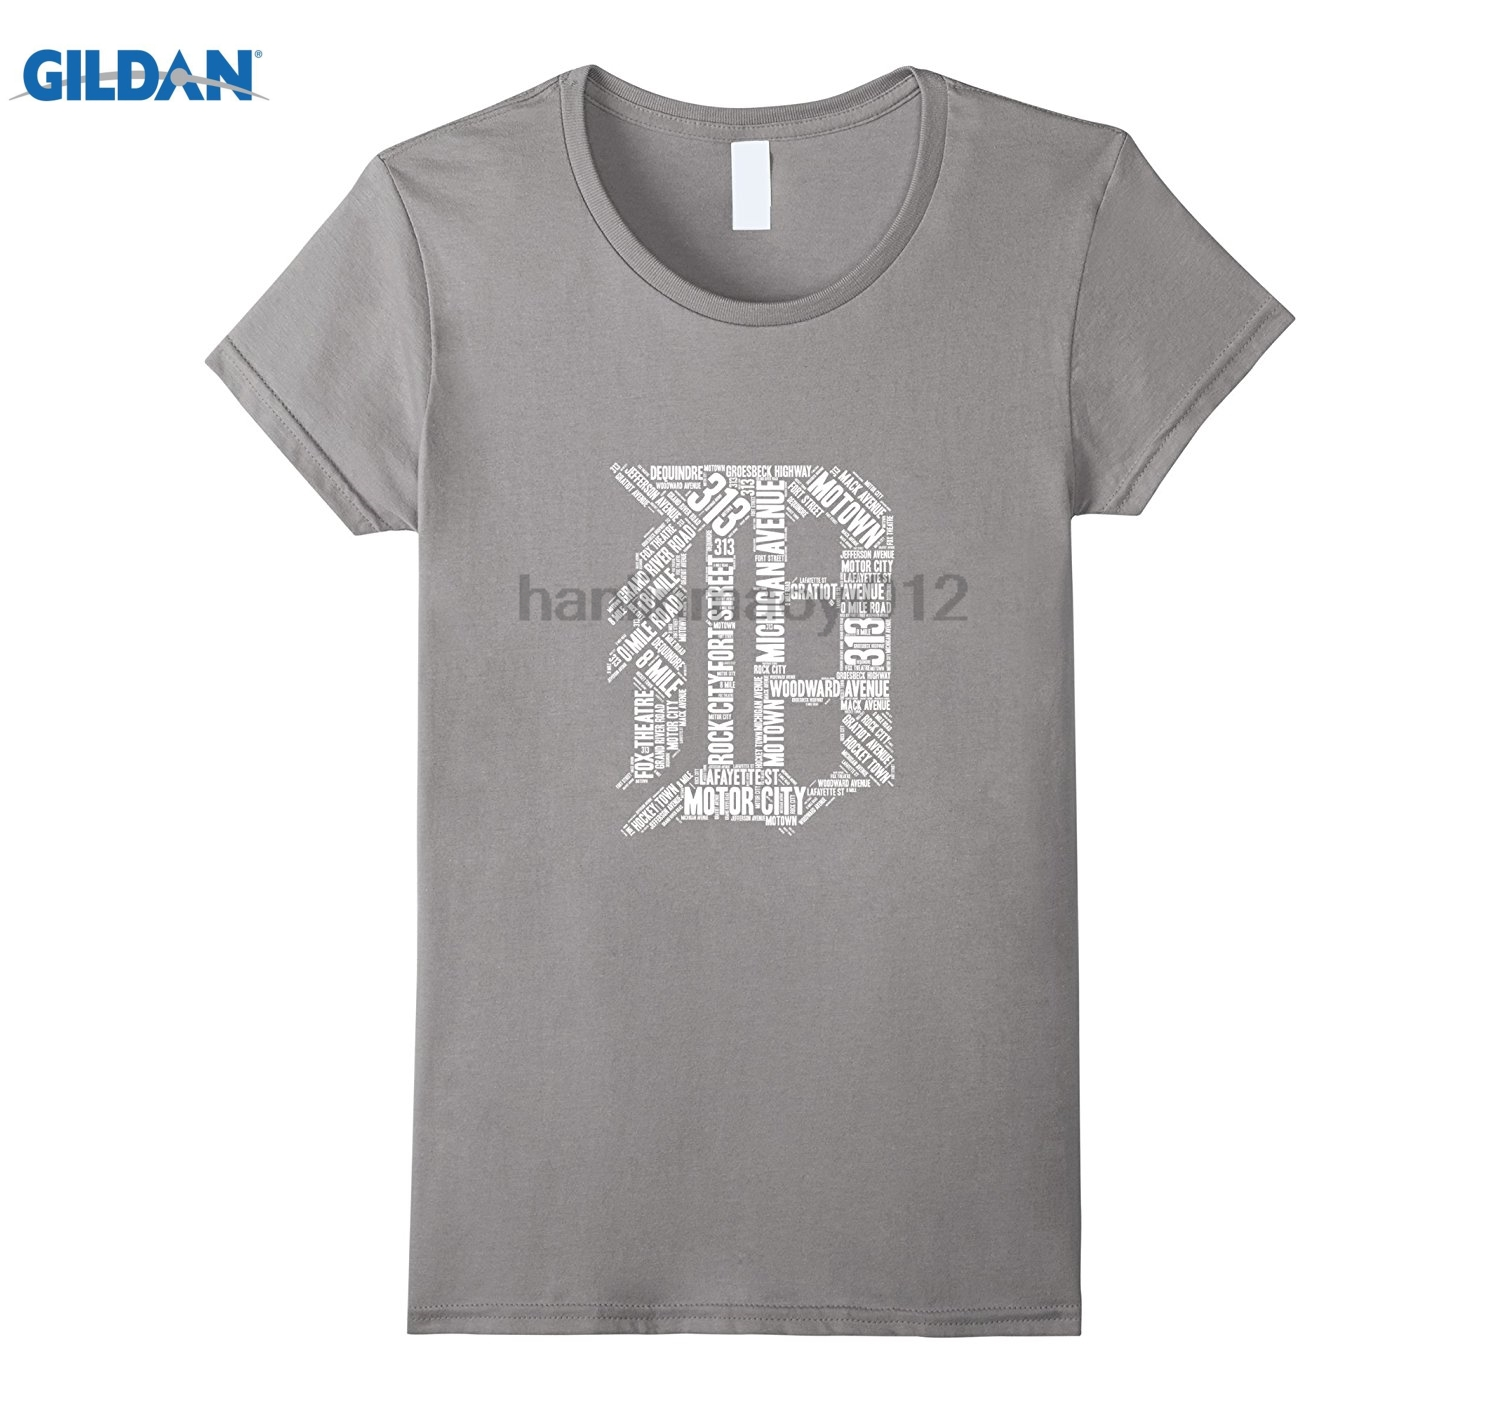 GILDAN Detroit T Shirt Graphic D Womens T-shirt ...